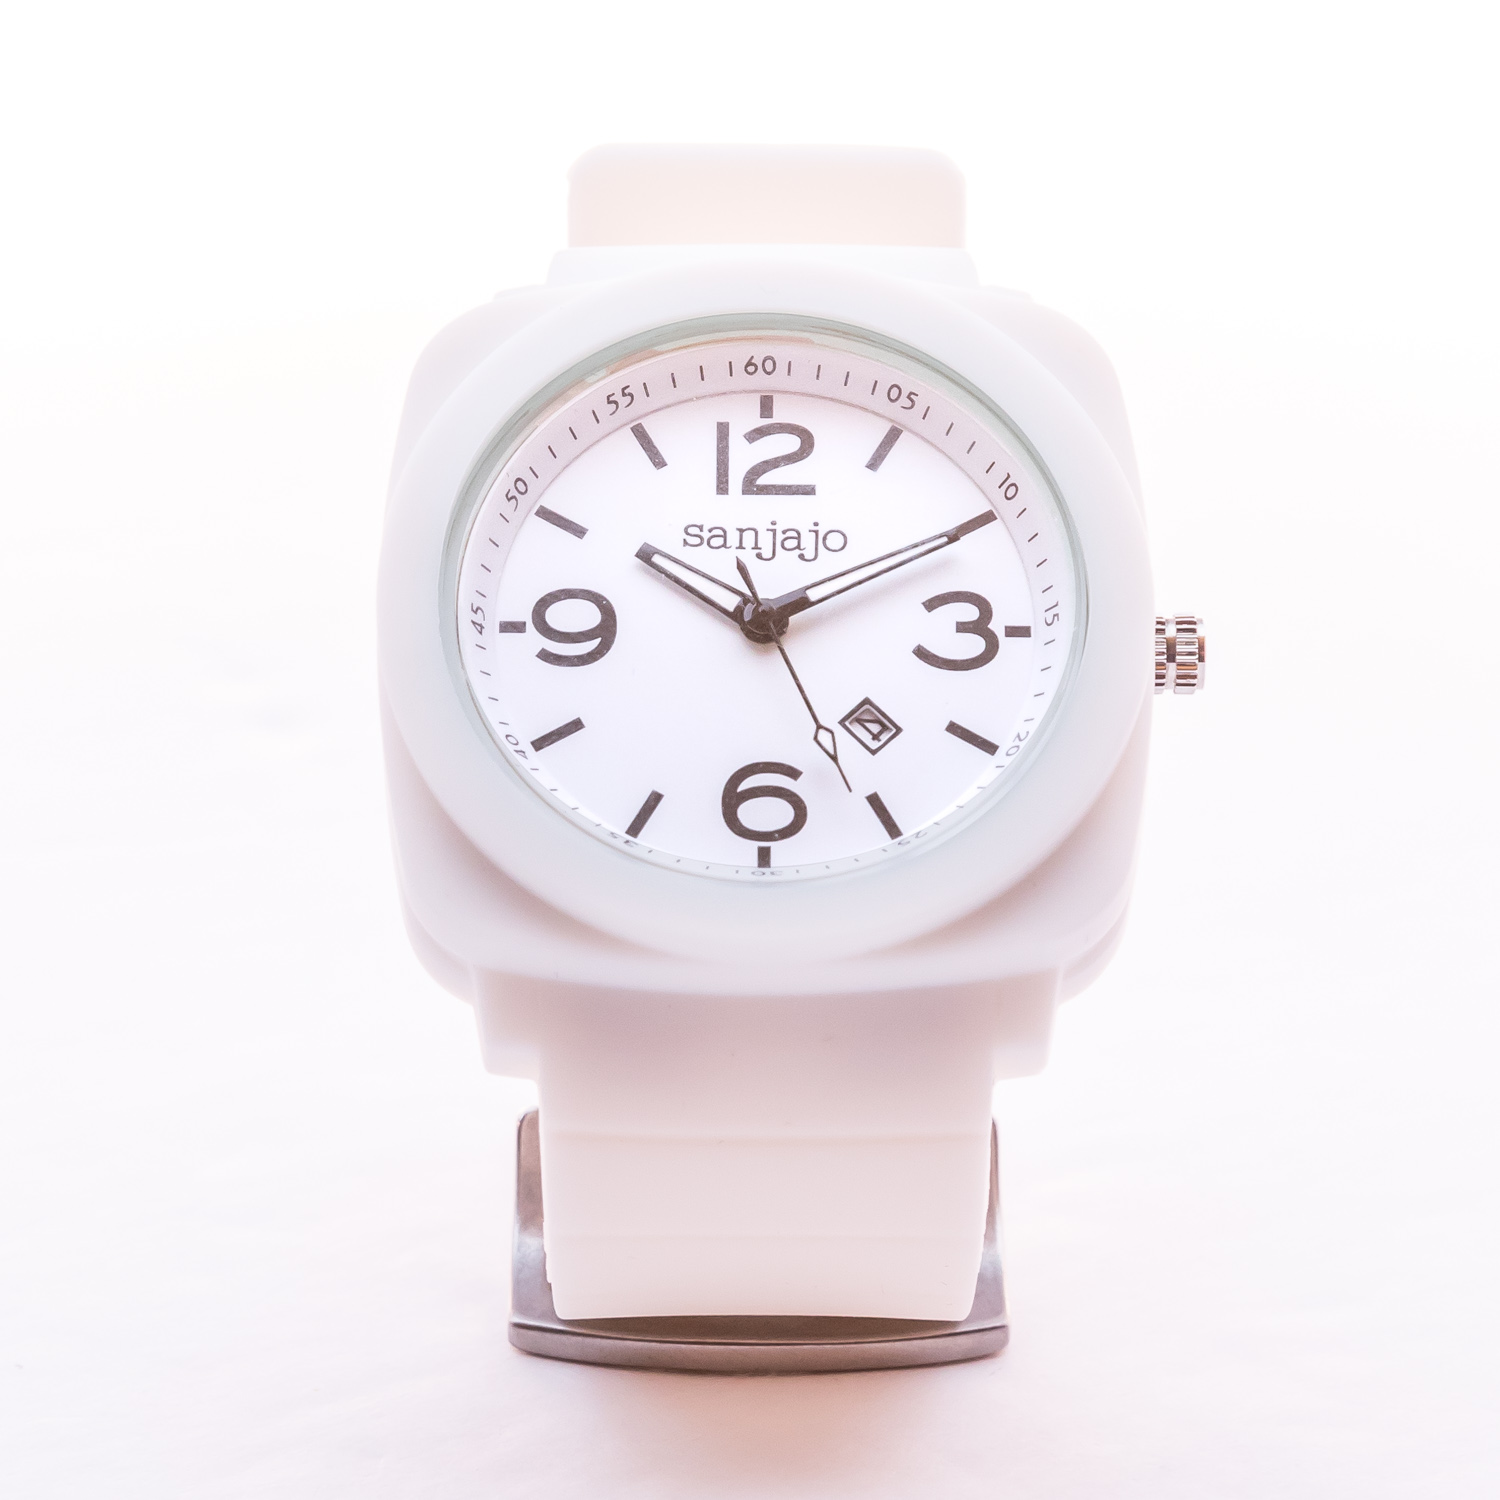 Sanjajo White on White Watch